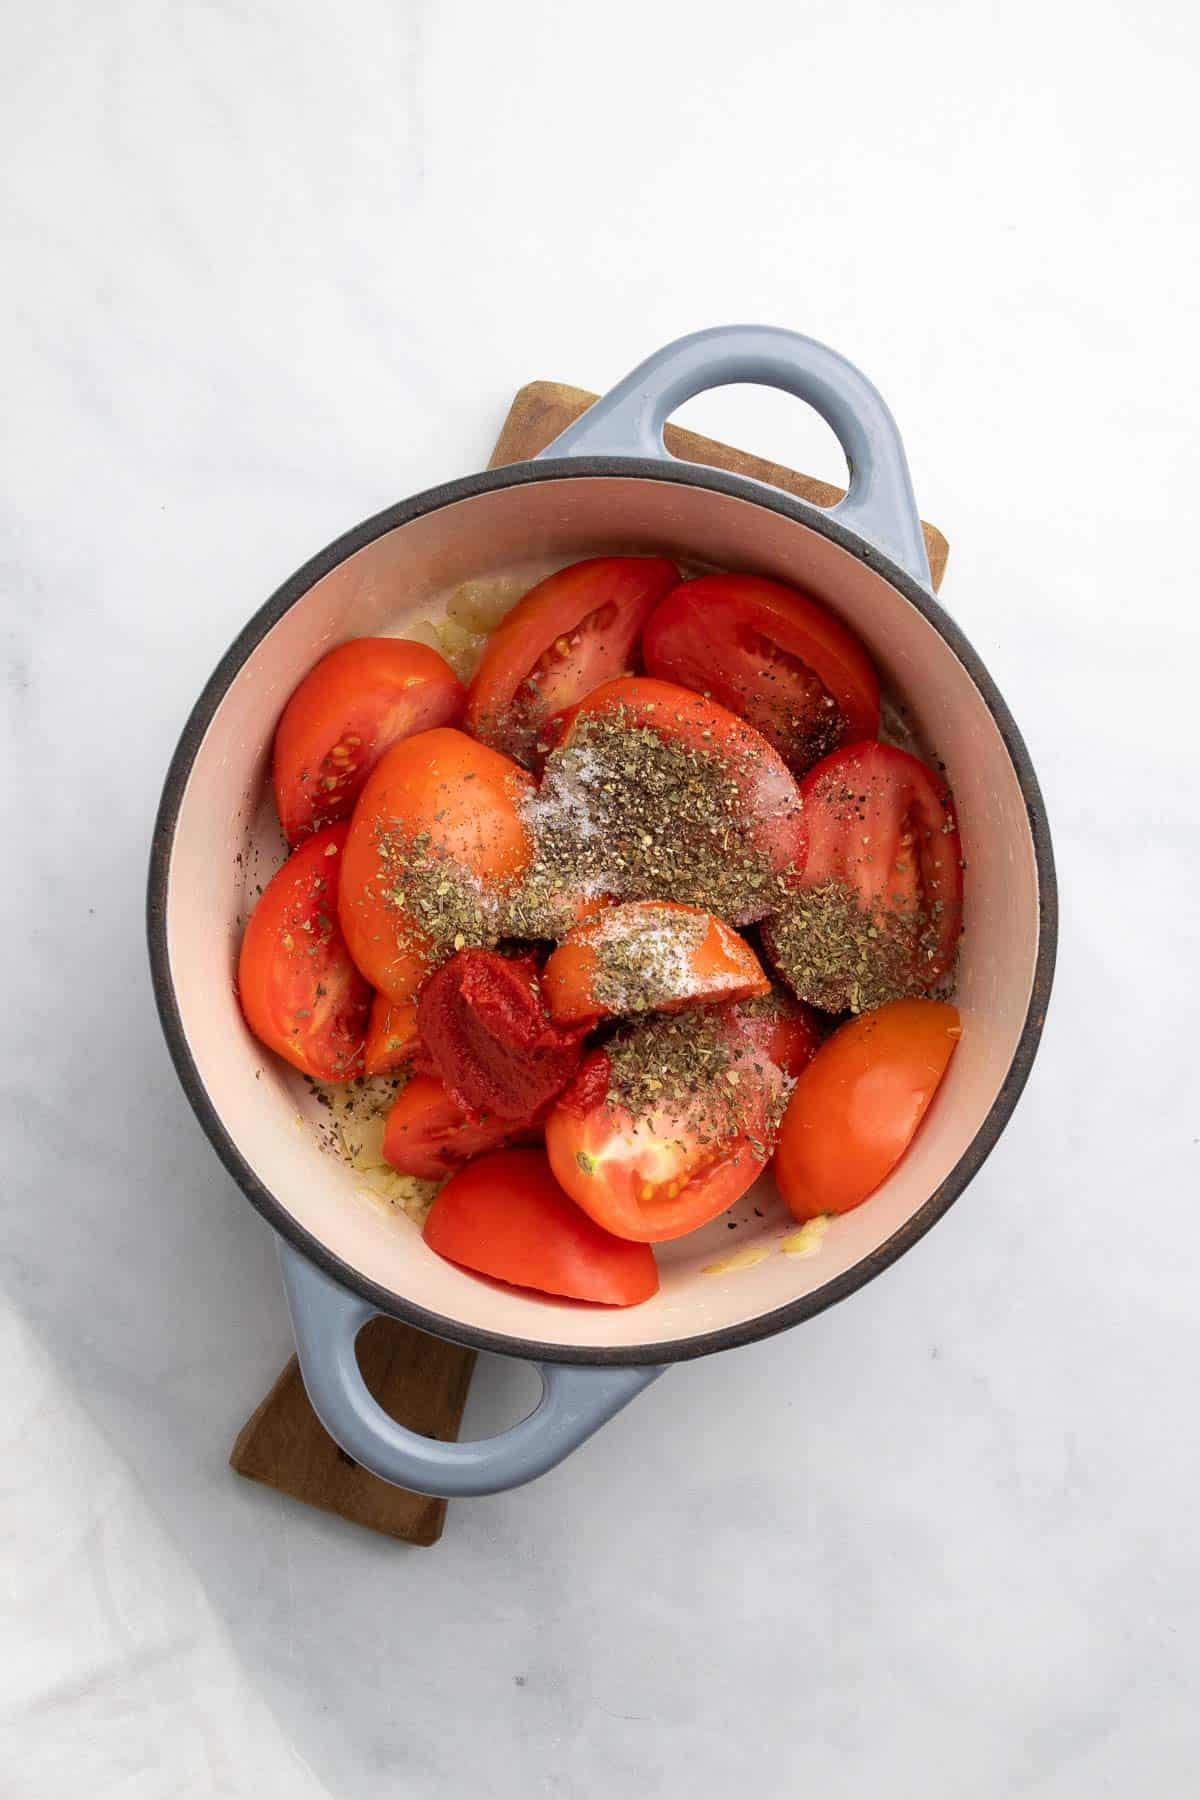 Tomatoes, tomato paste, and seasoning added to the heavy bottomed pan